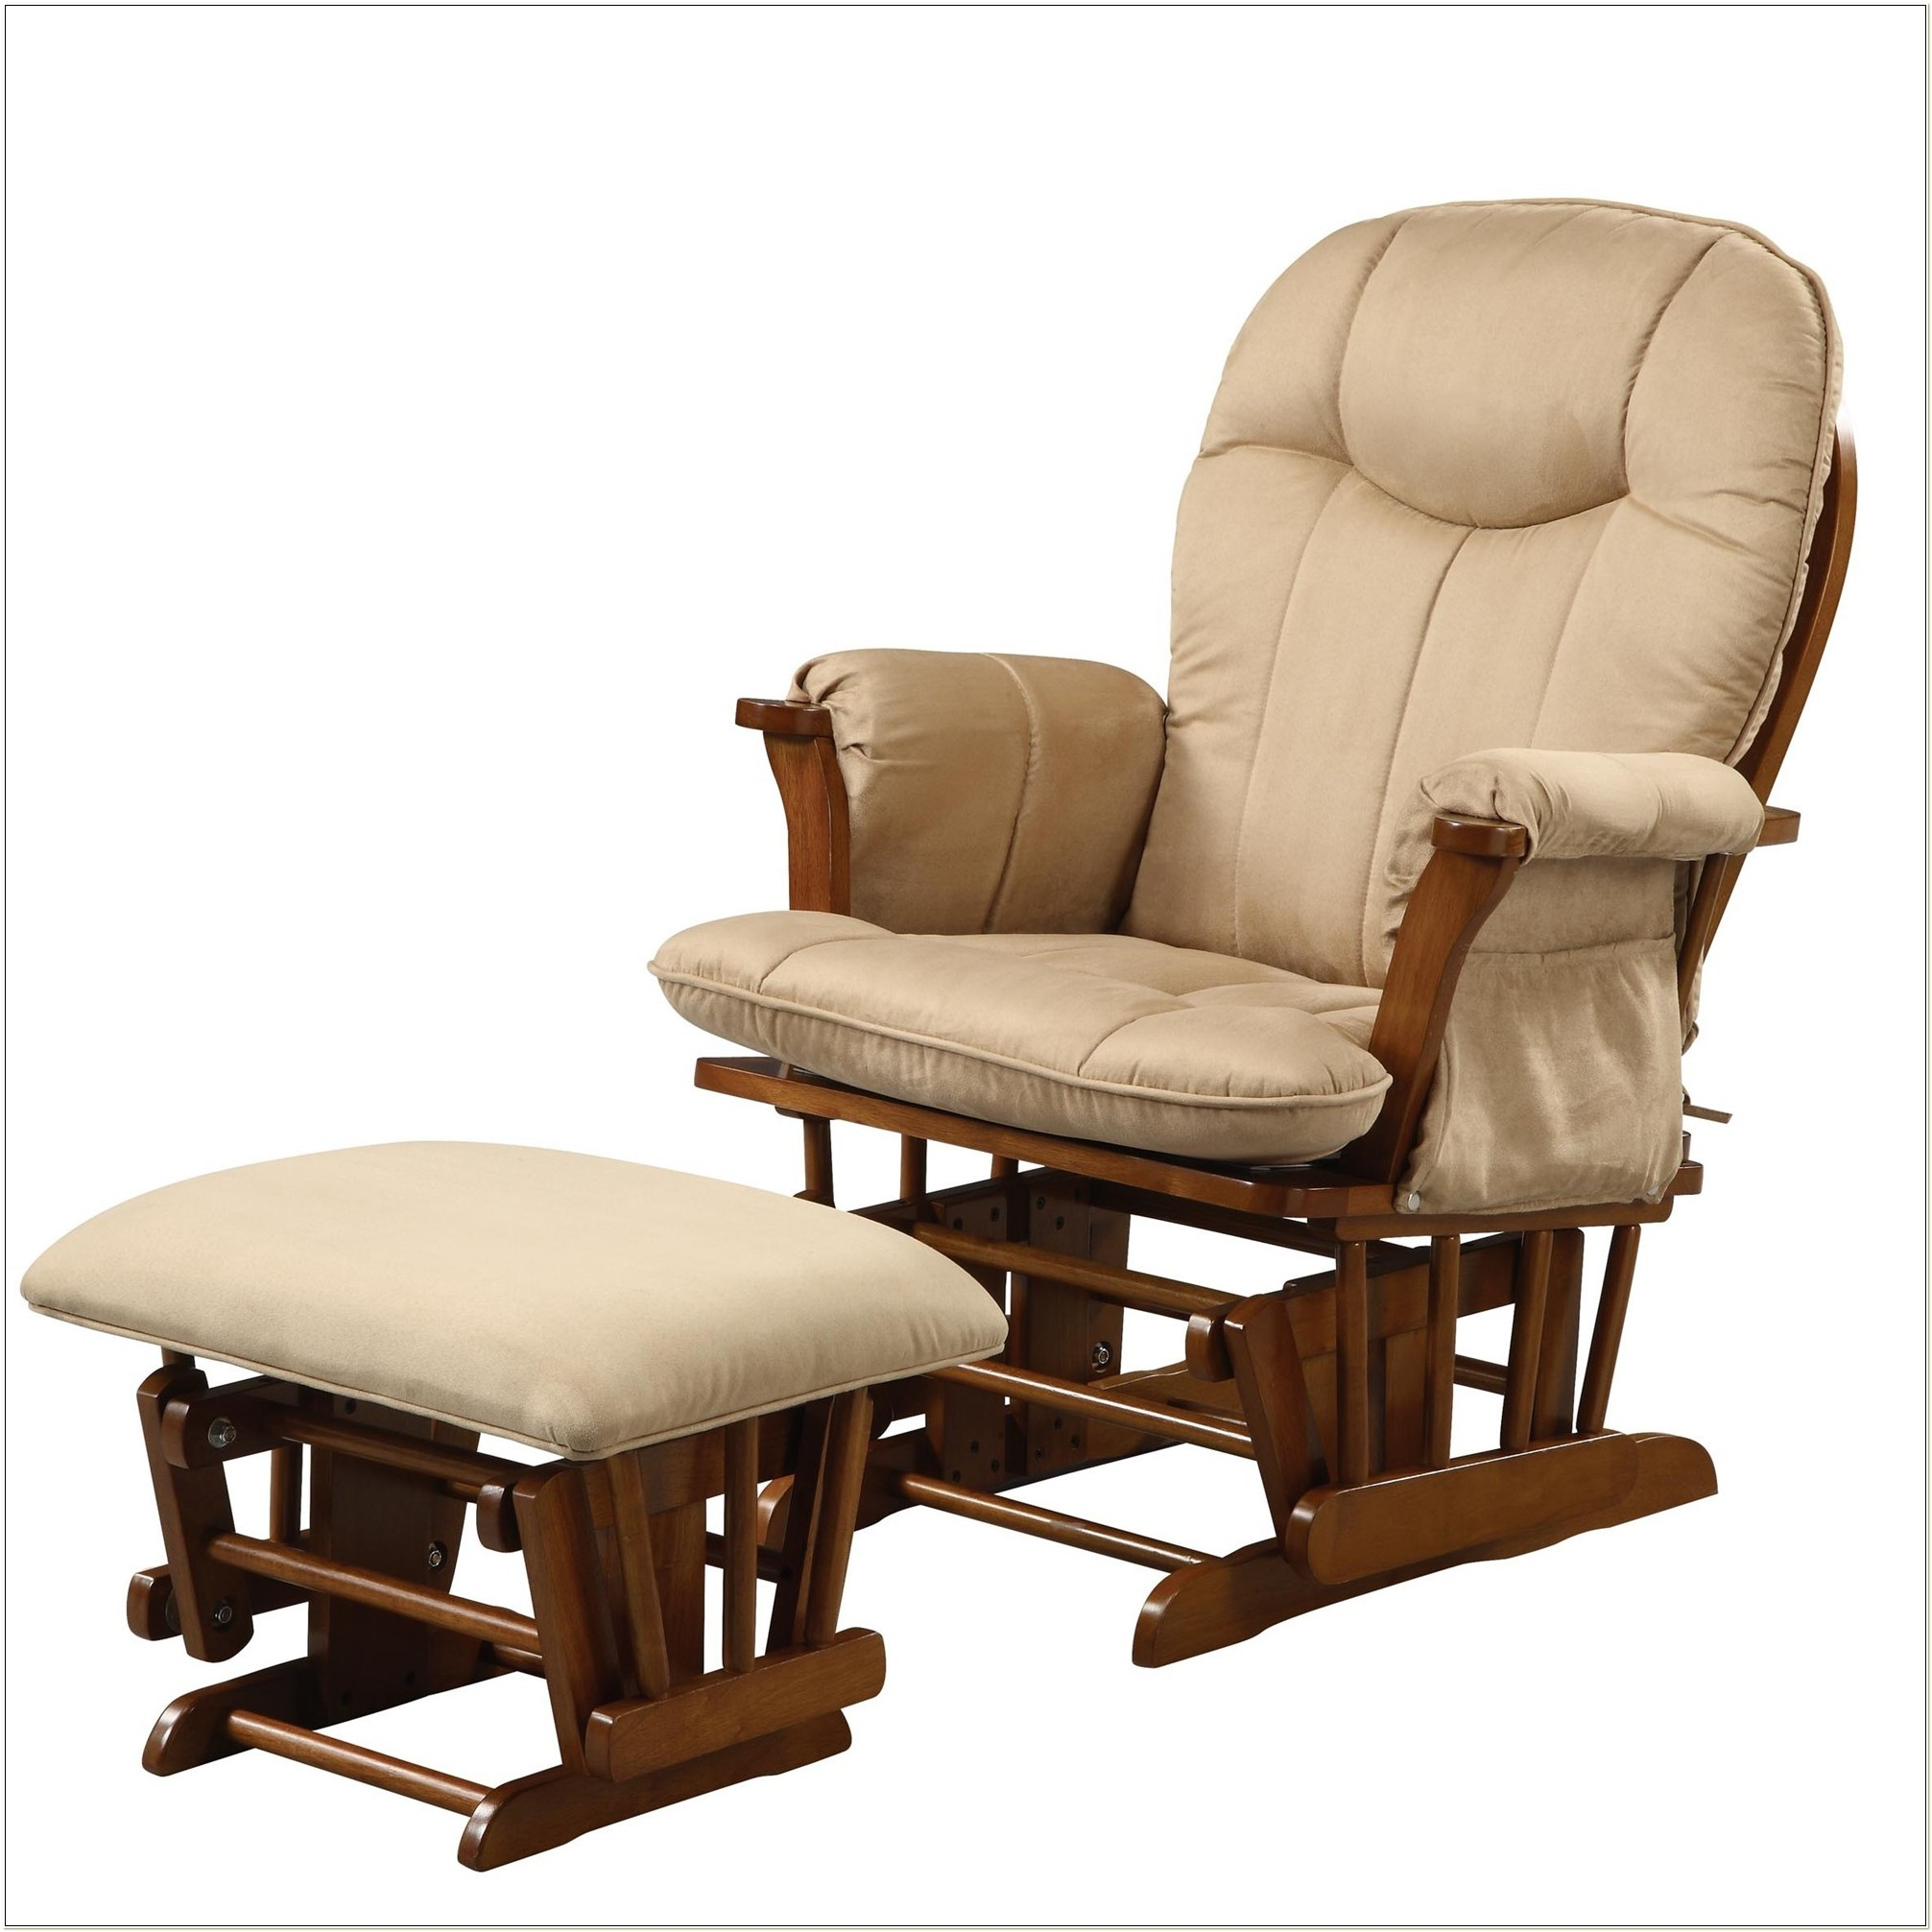 Glider Rocker Chair With Ottoman